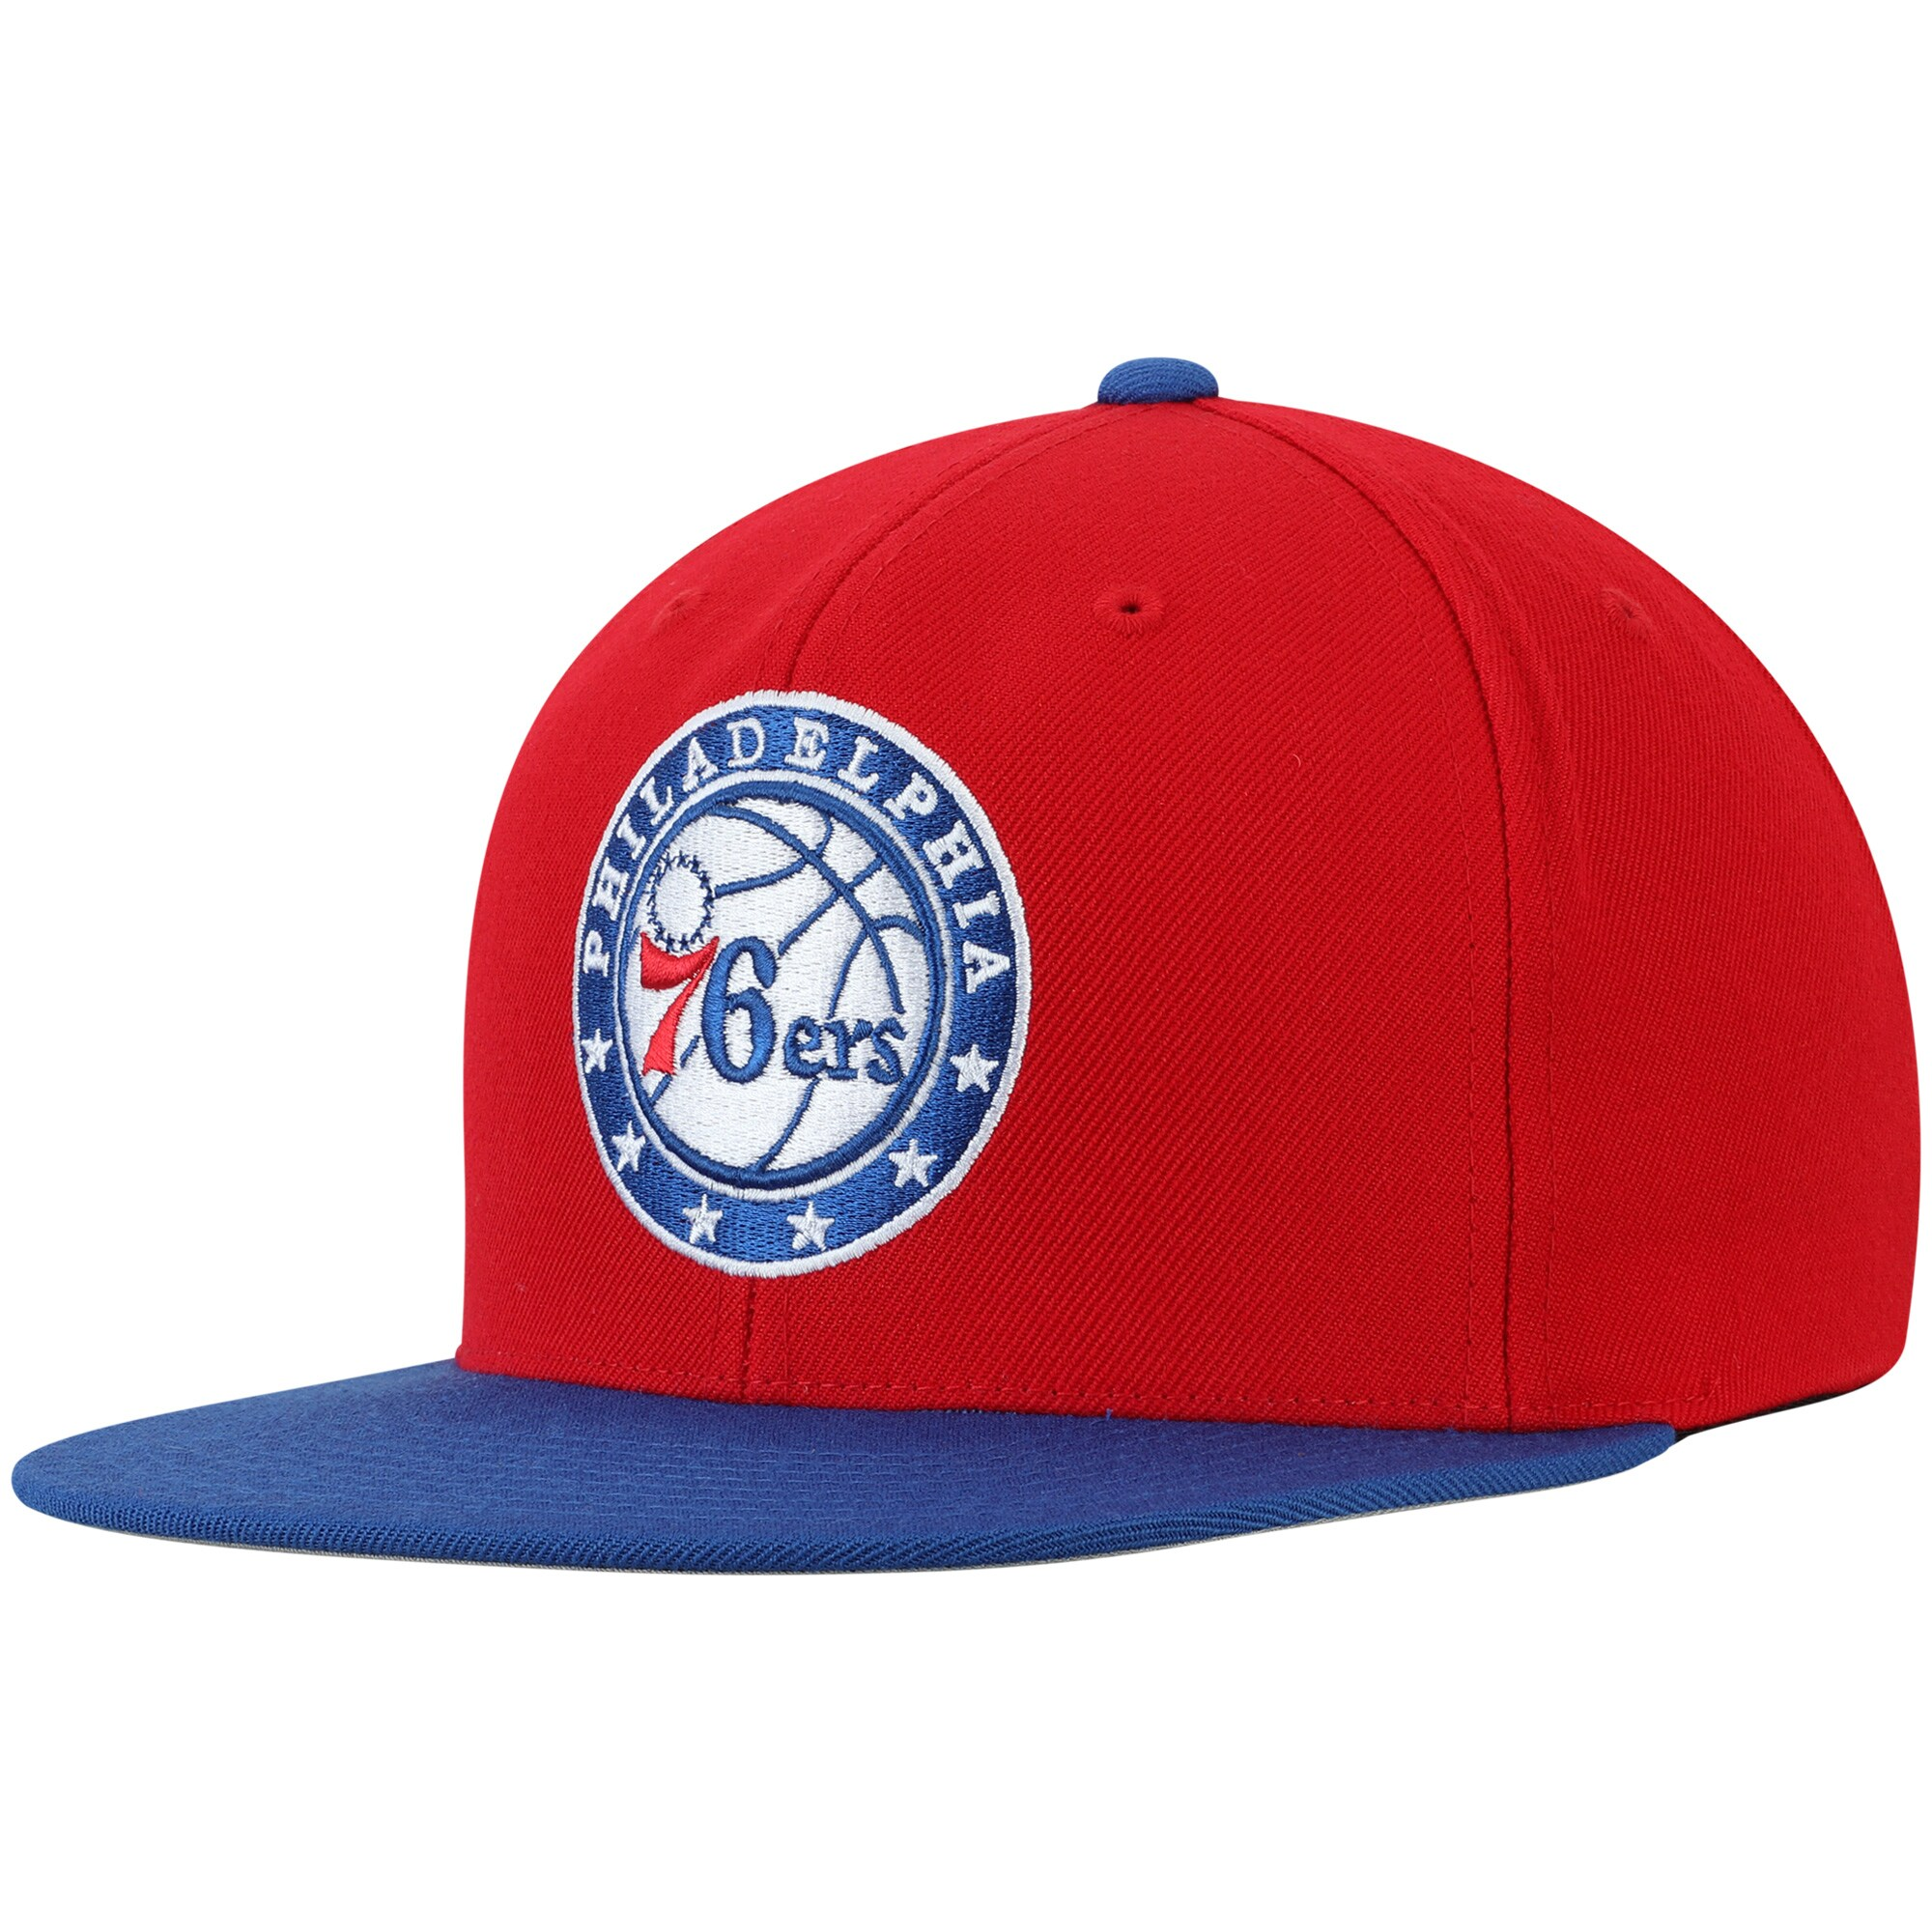 Philadelphia 76ers Mitchell & Ness Two-Tone Wool Snapback Hat - Red/Royal